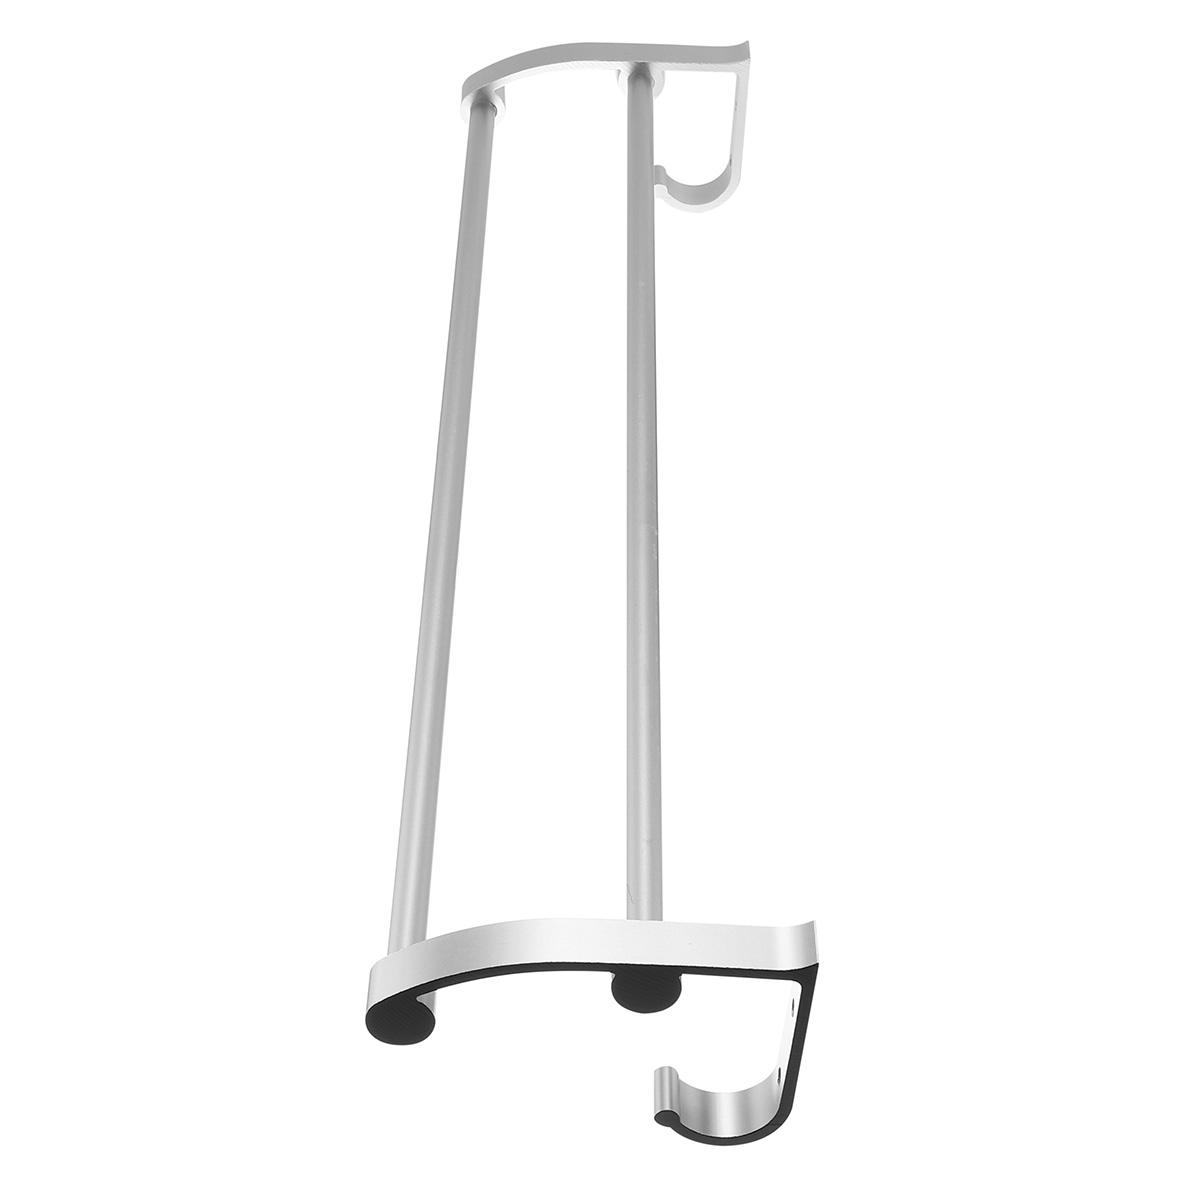 Space Aluminum Towel Rack Hook Wall Mounted Rail Towel Double Shelf Storage Bathroom Kitchen Holder